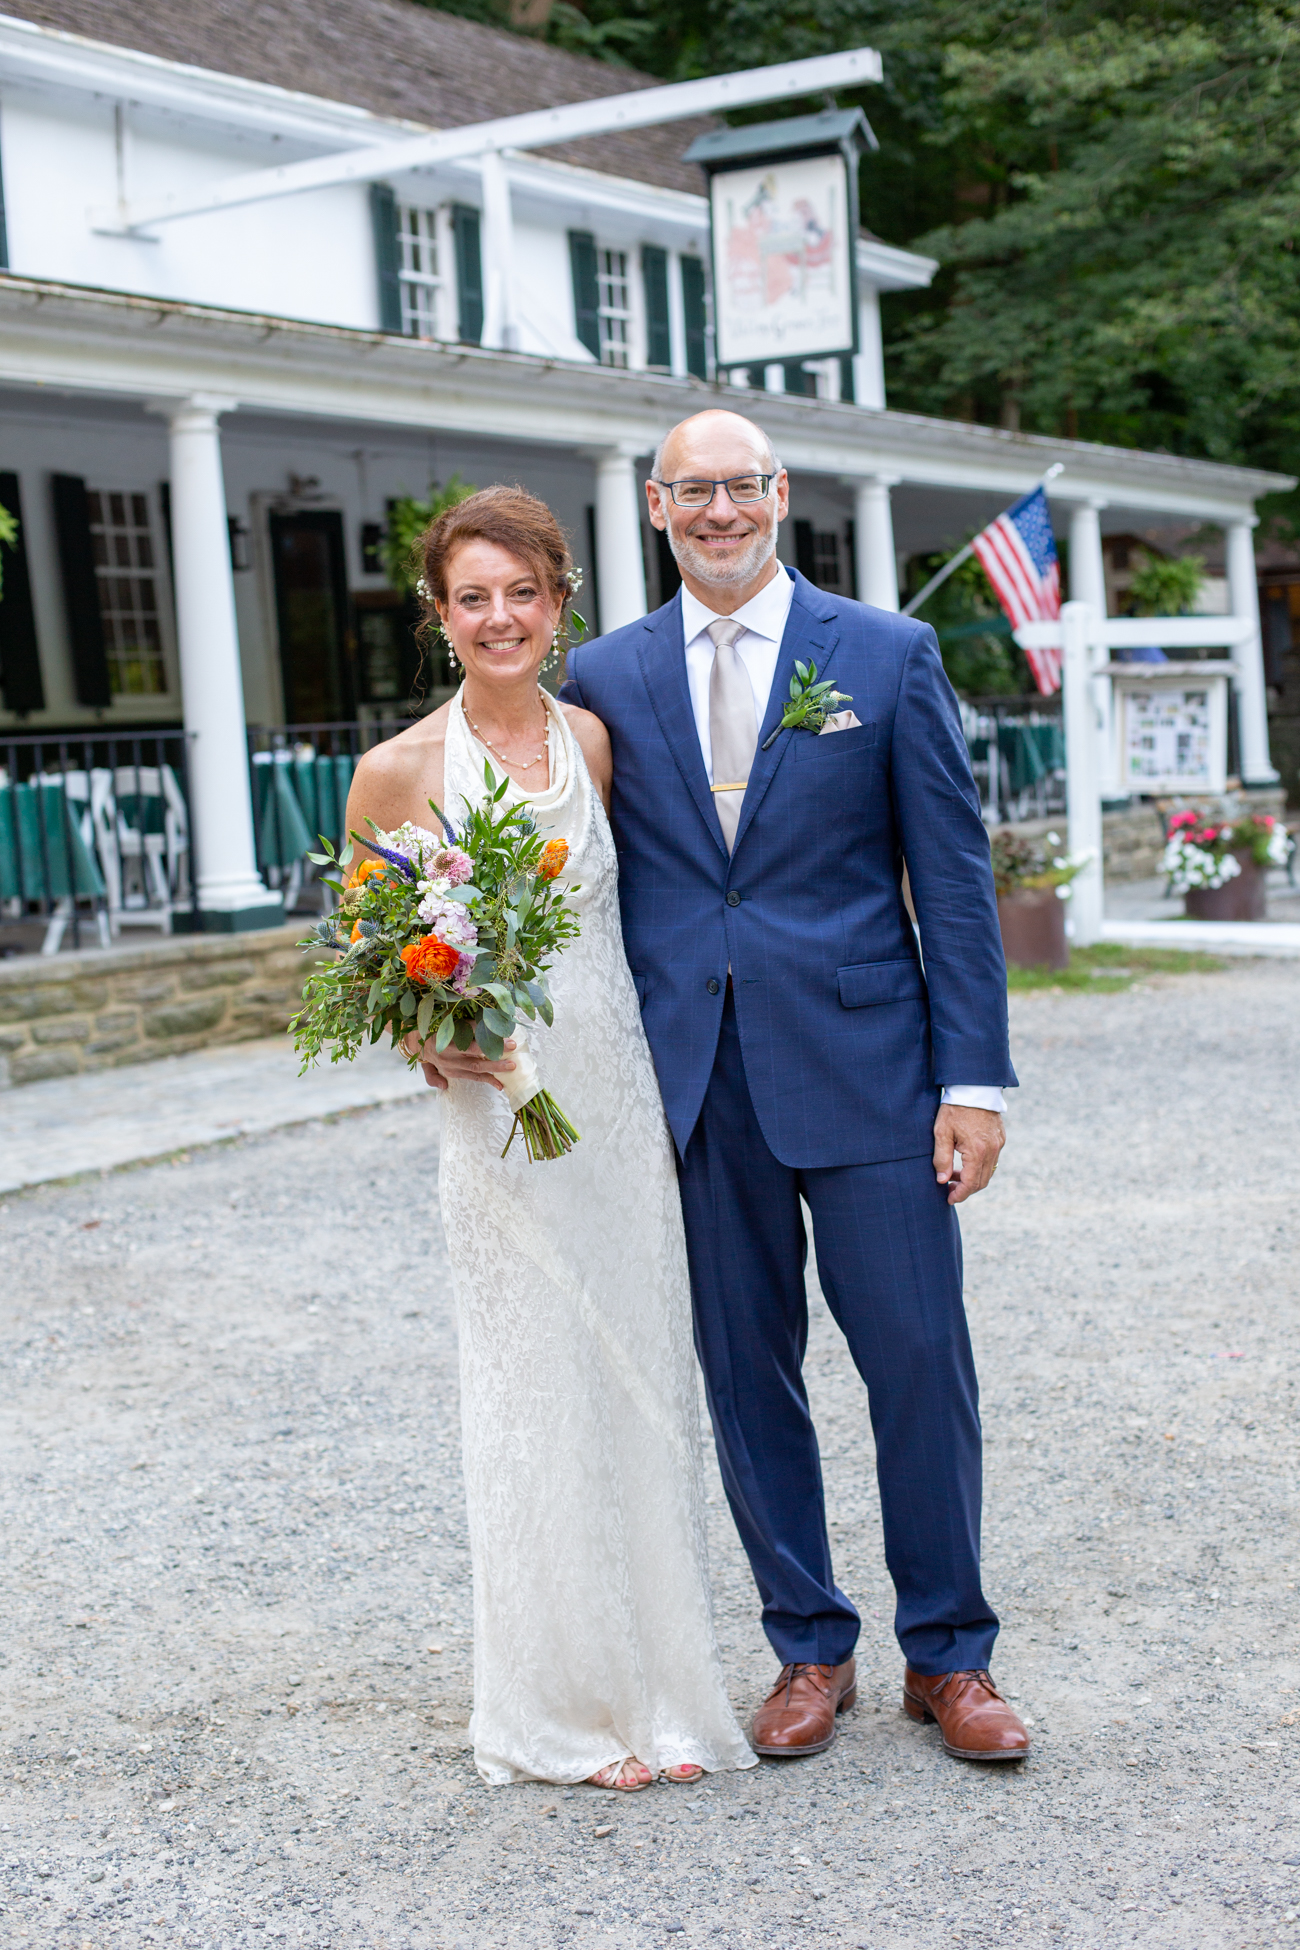 Melton-Kessler Wedding at Valley Green Inn by Avi Loren Fox LLC-41.jpg